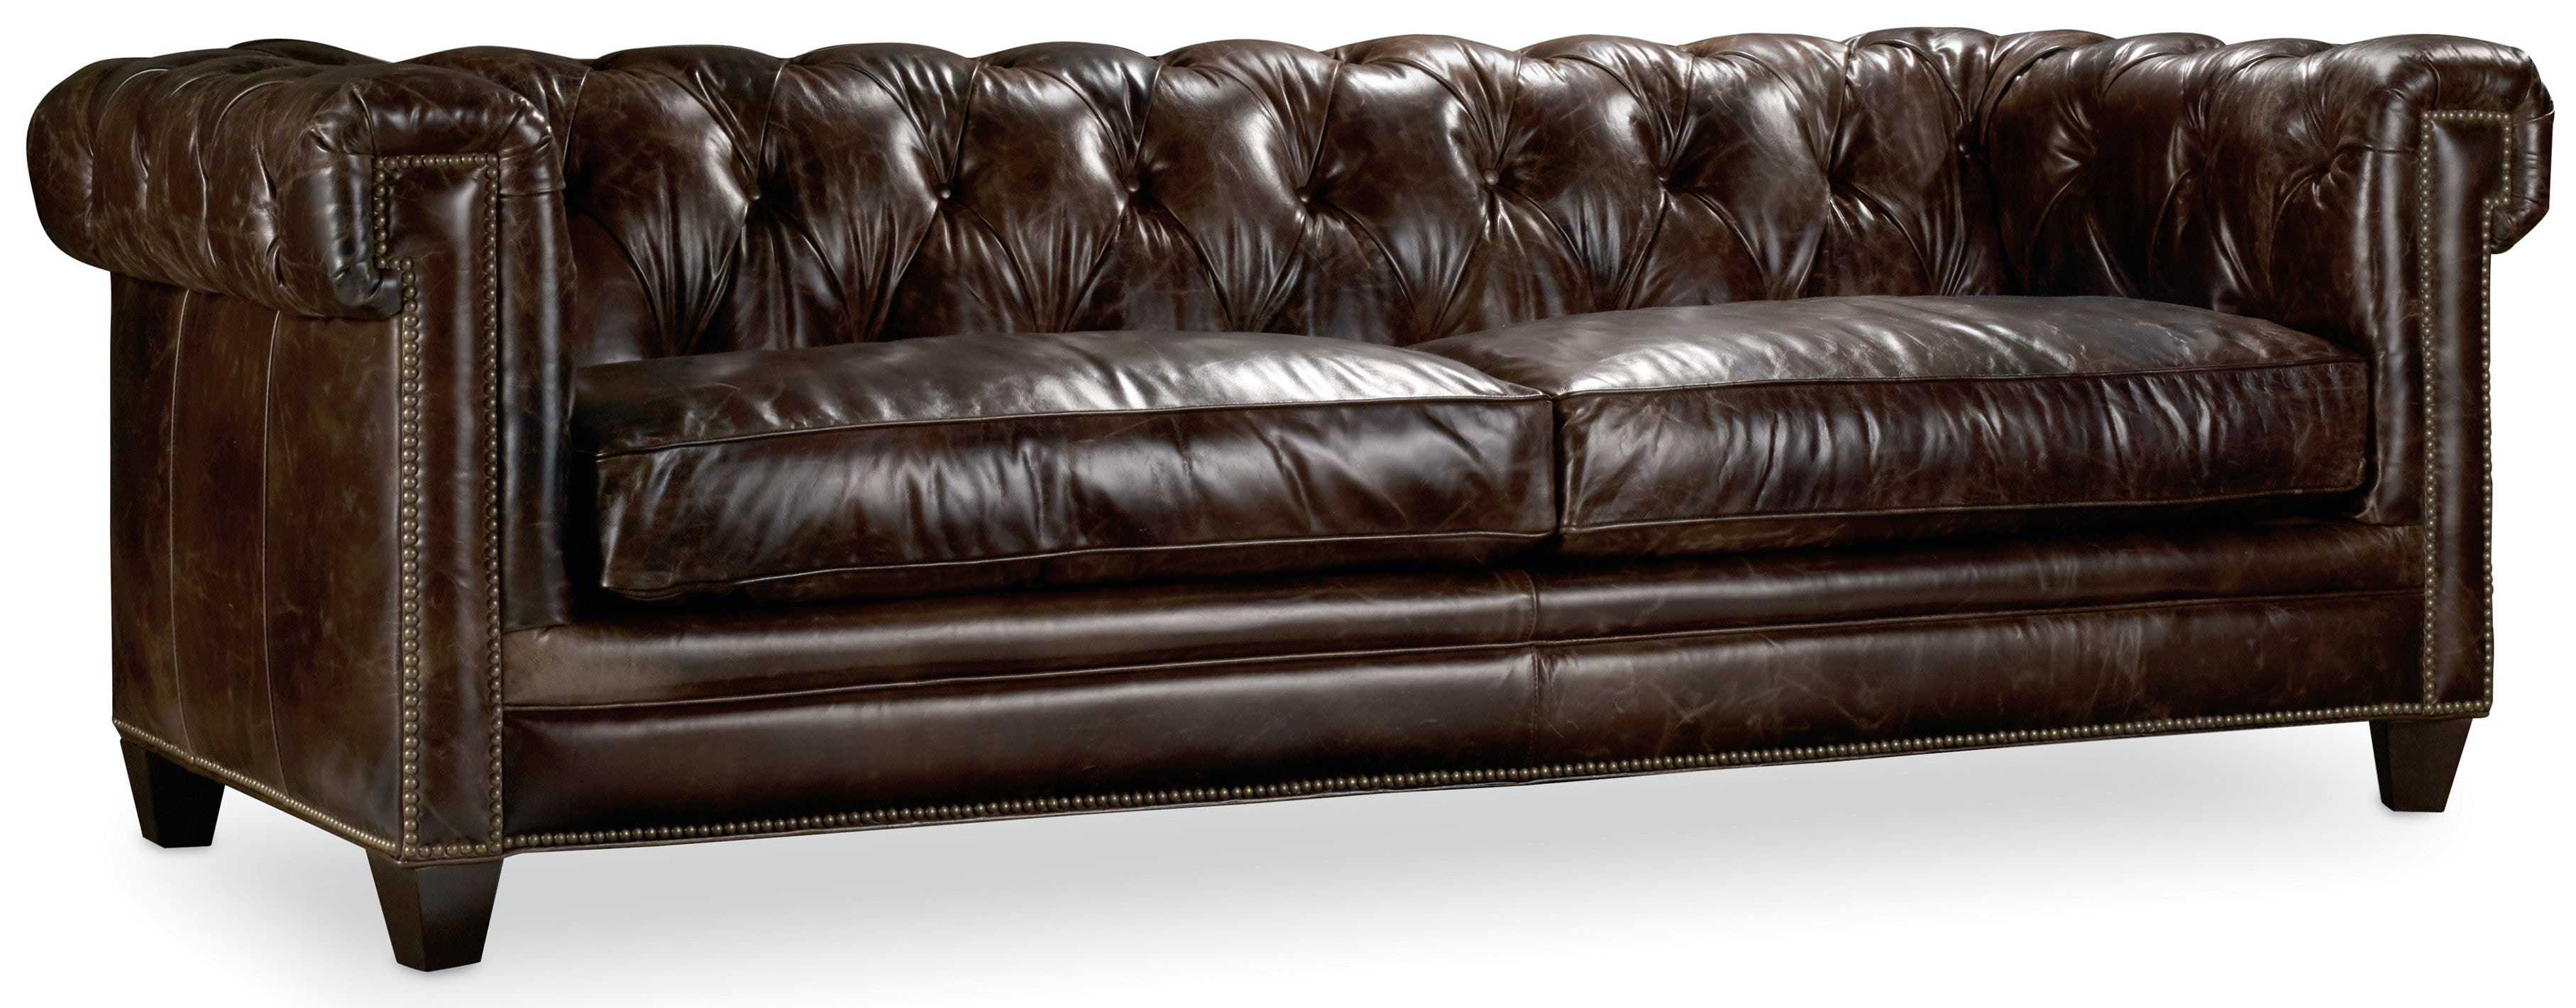 Hooker Furniture Imperial Regal Stationary Sofa. Call For Price.  SS195 03 089